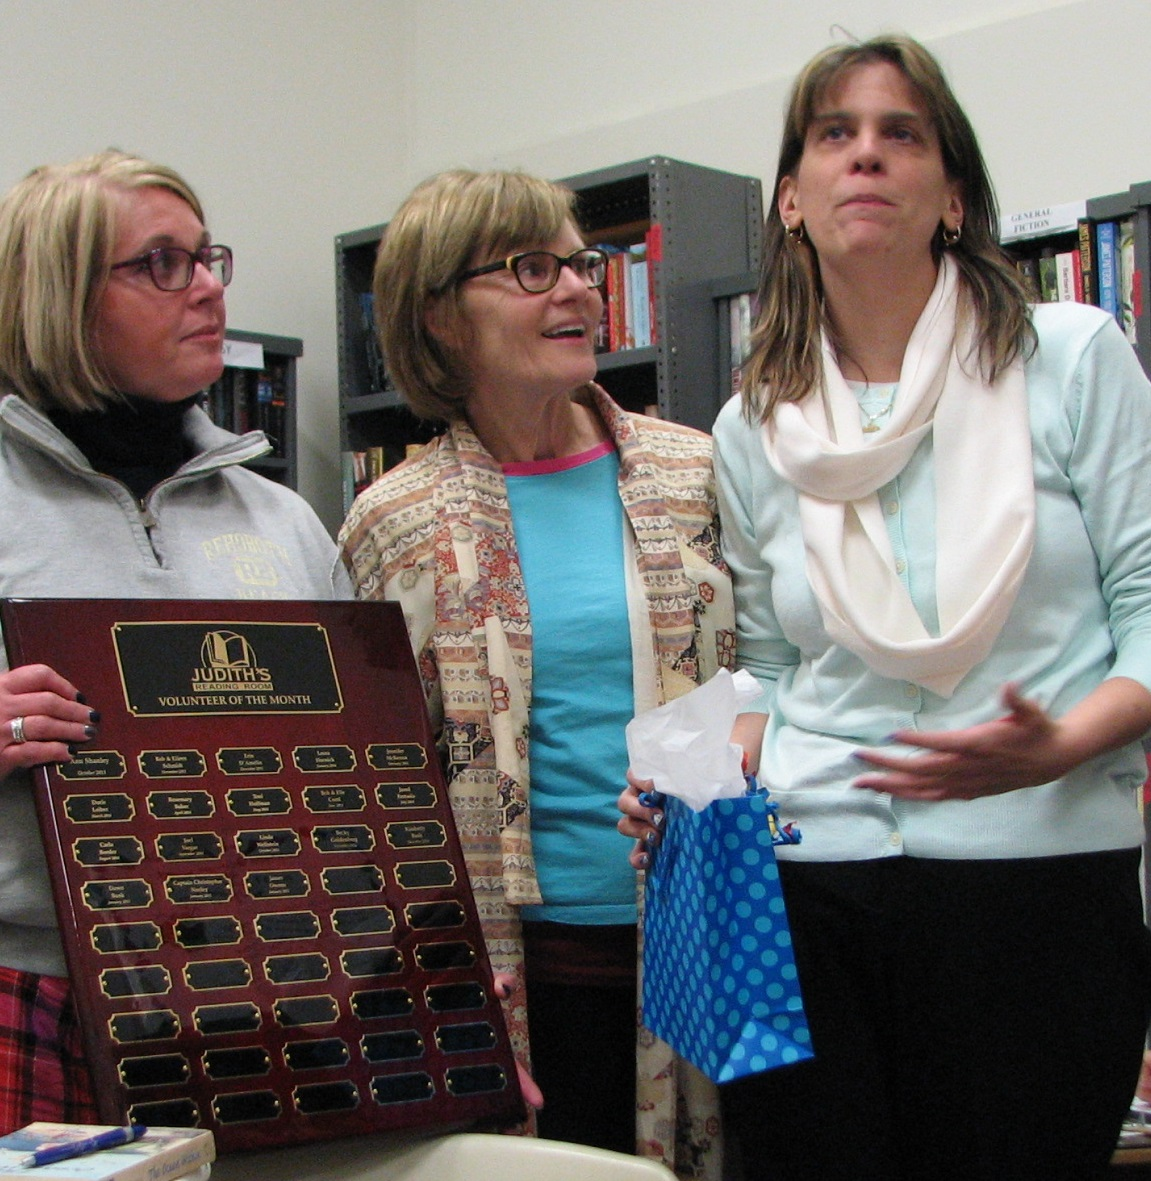 Dawn Bush (right) is recognized  on a plaque that hangs in the Judith's Reading Room HQ in Bethlehem. Cathy Leiber (middle) is the President of Judith's Reading Room.